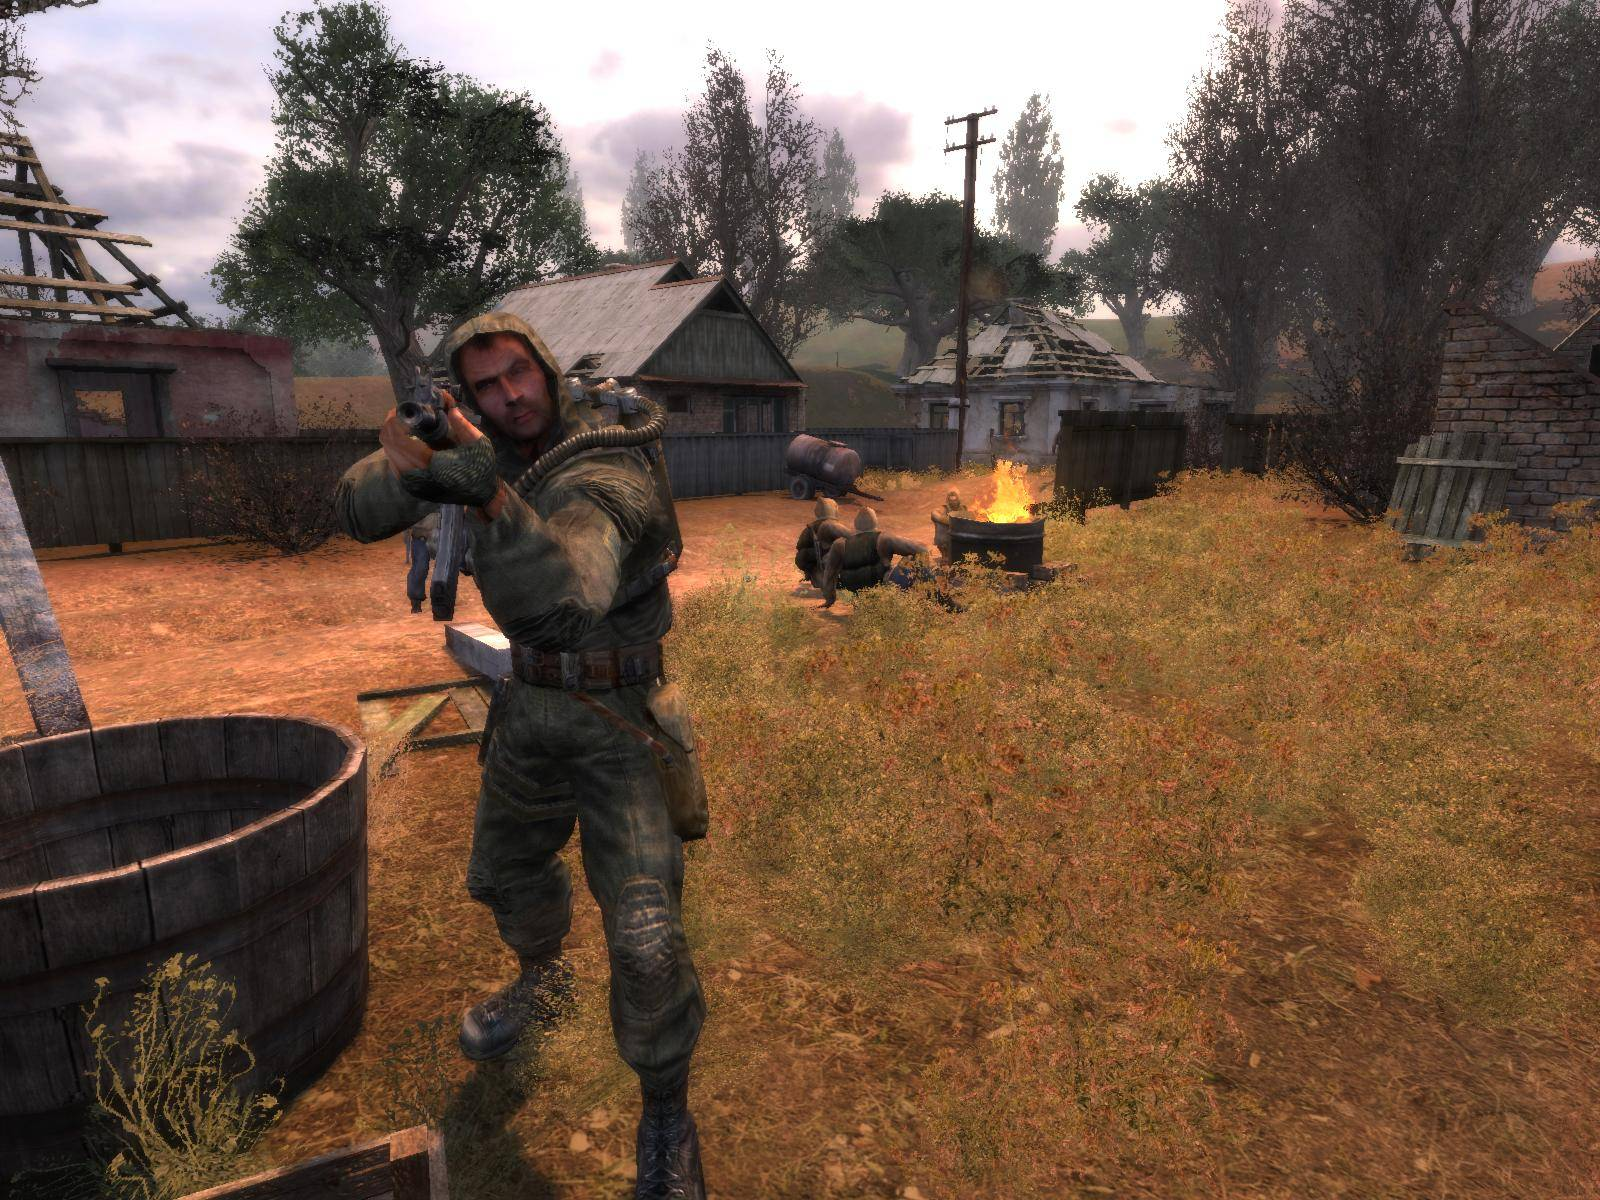 S.T.A.L.K.E.R- Shadow of Chernobyl Lost World Condemned (201.